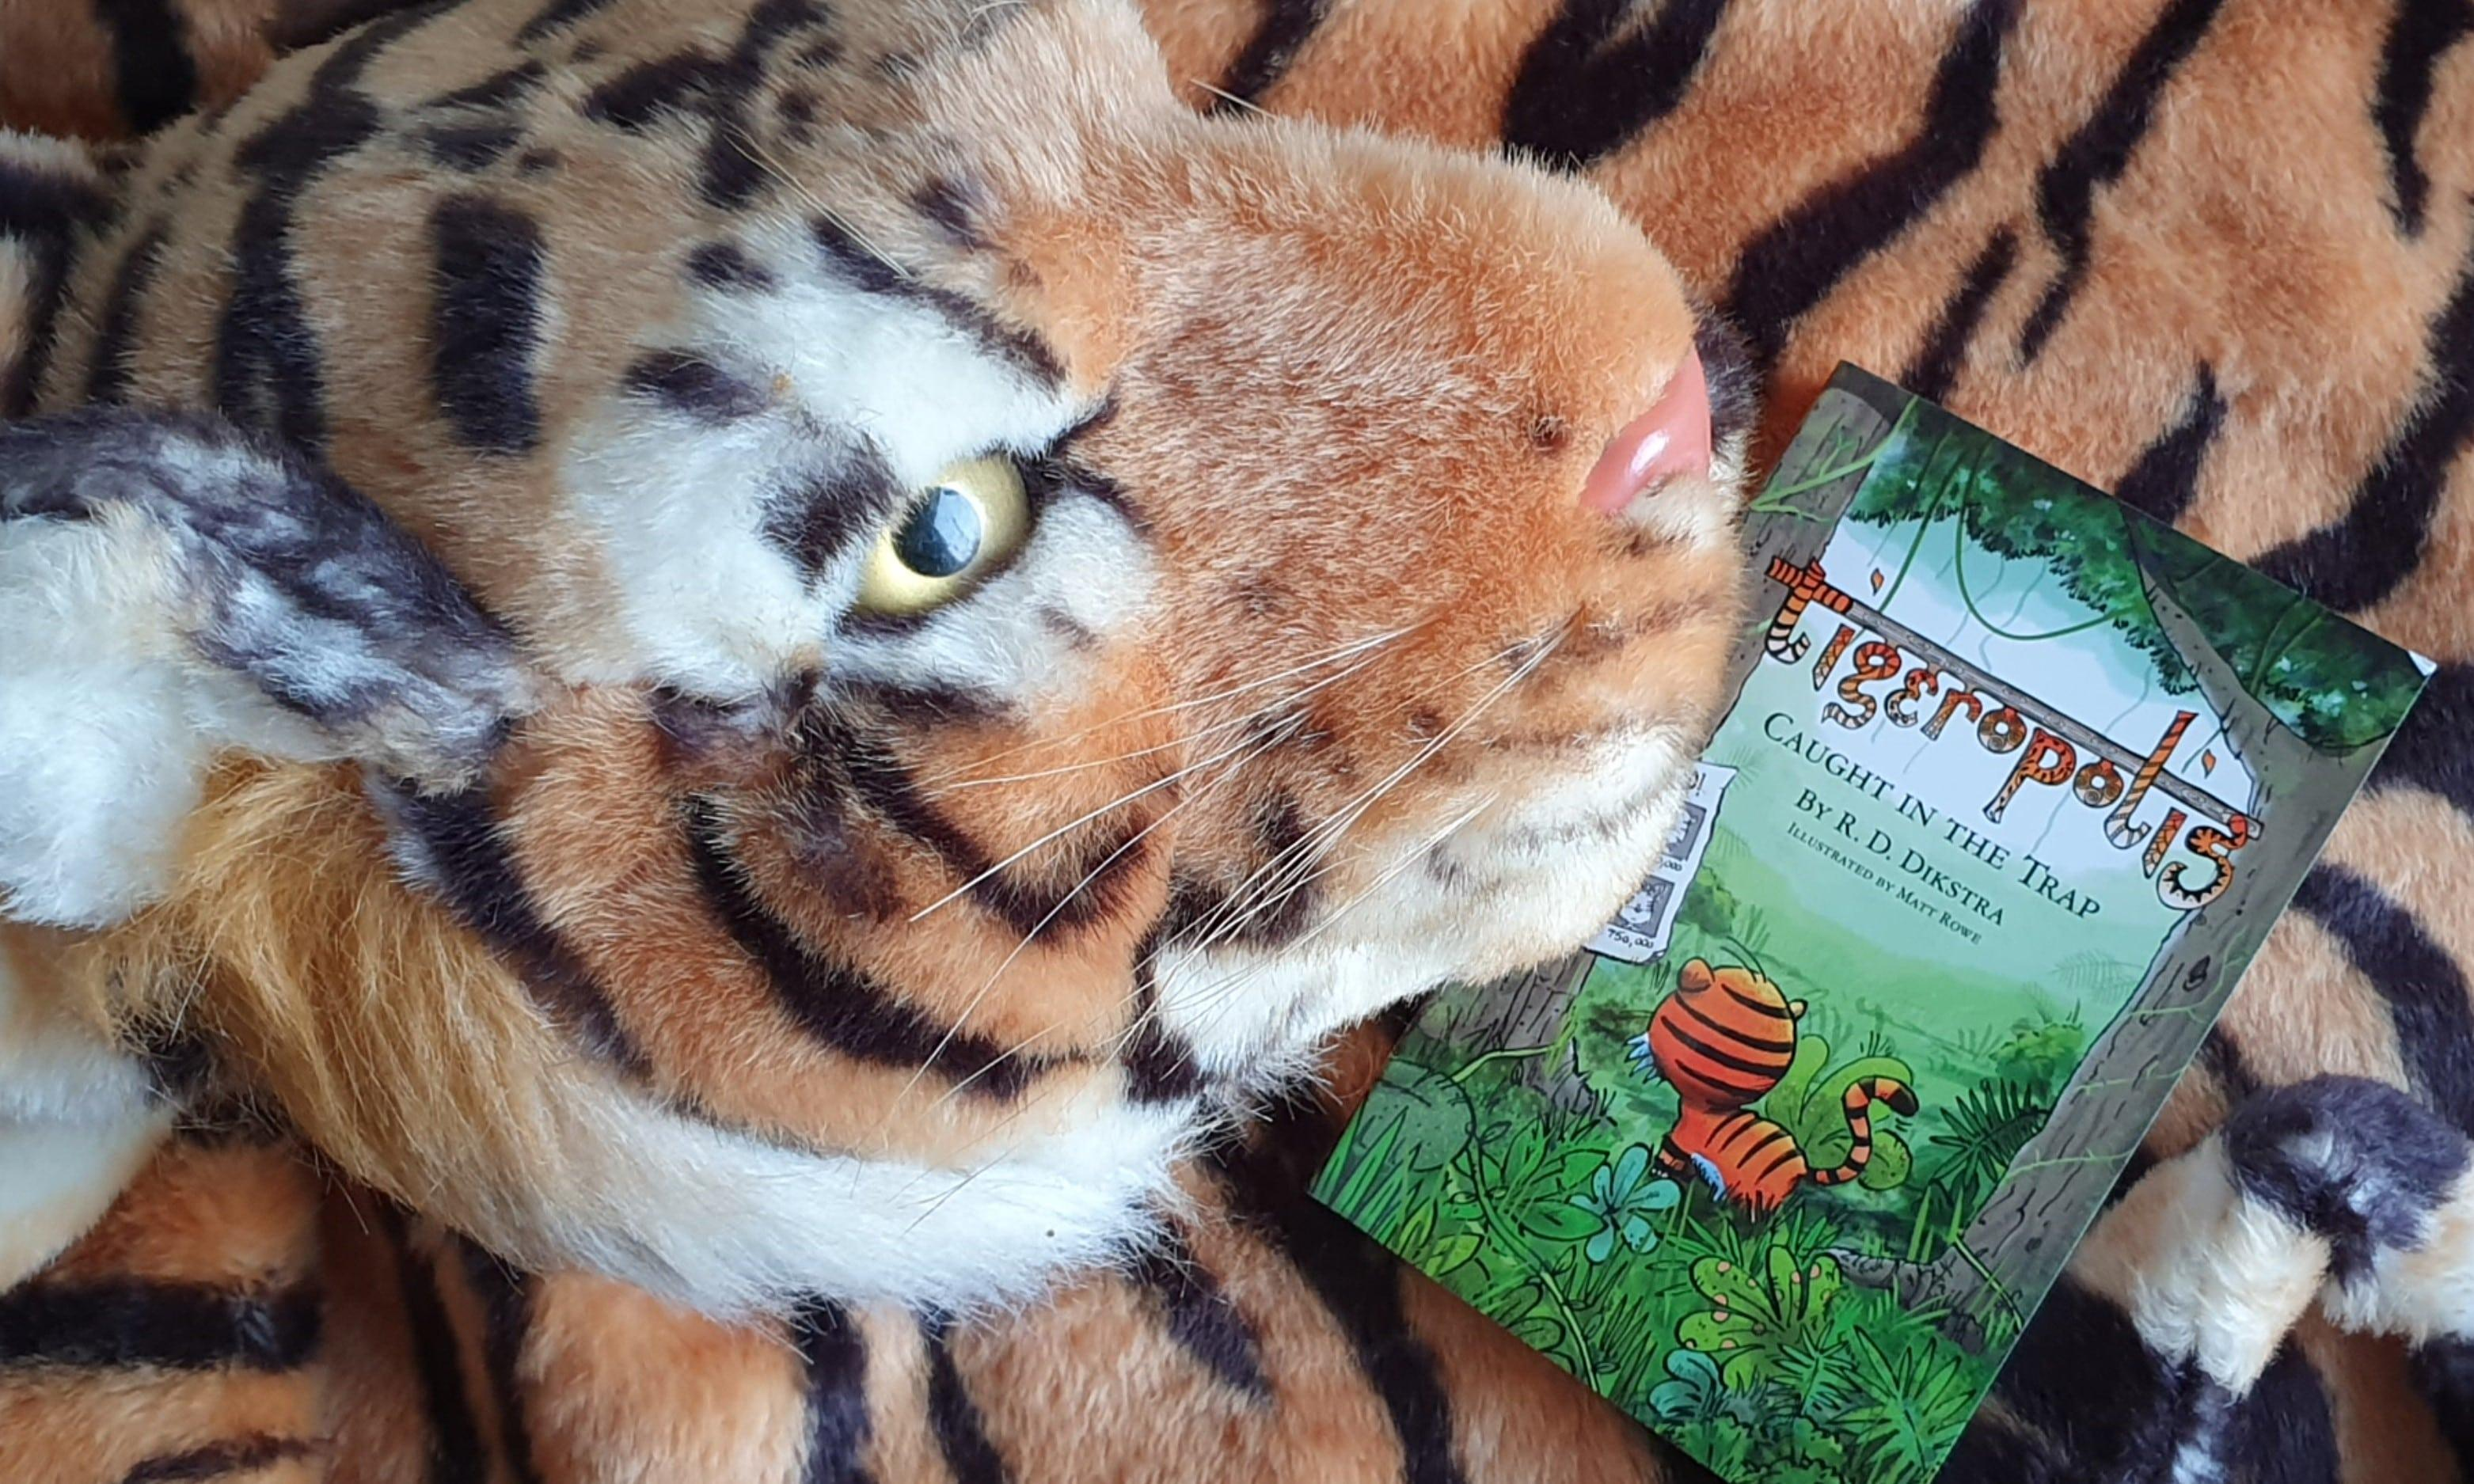 REVIEW Tigeropolis Caught in the Trap